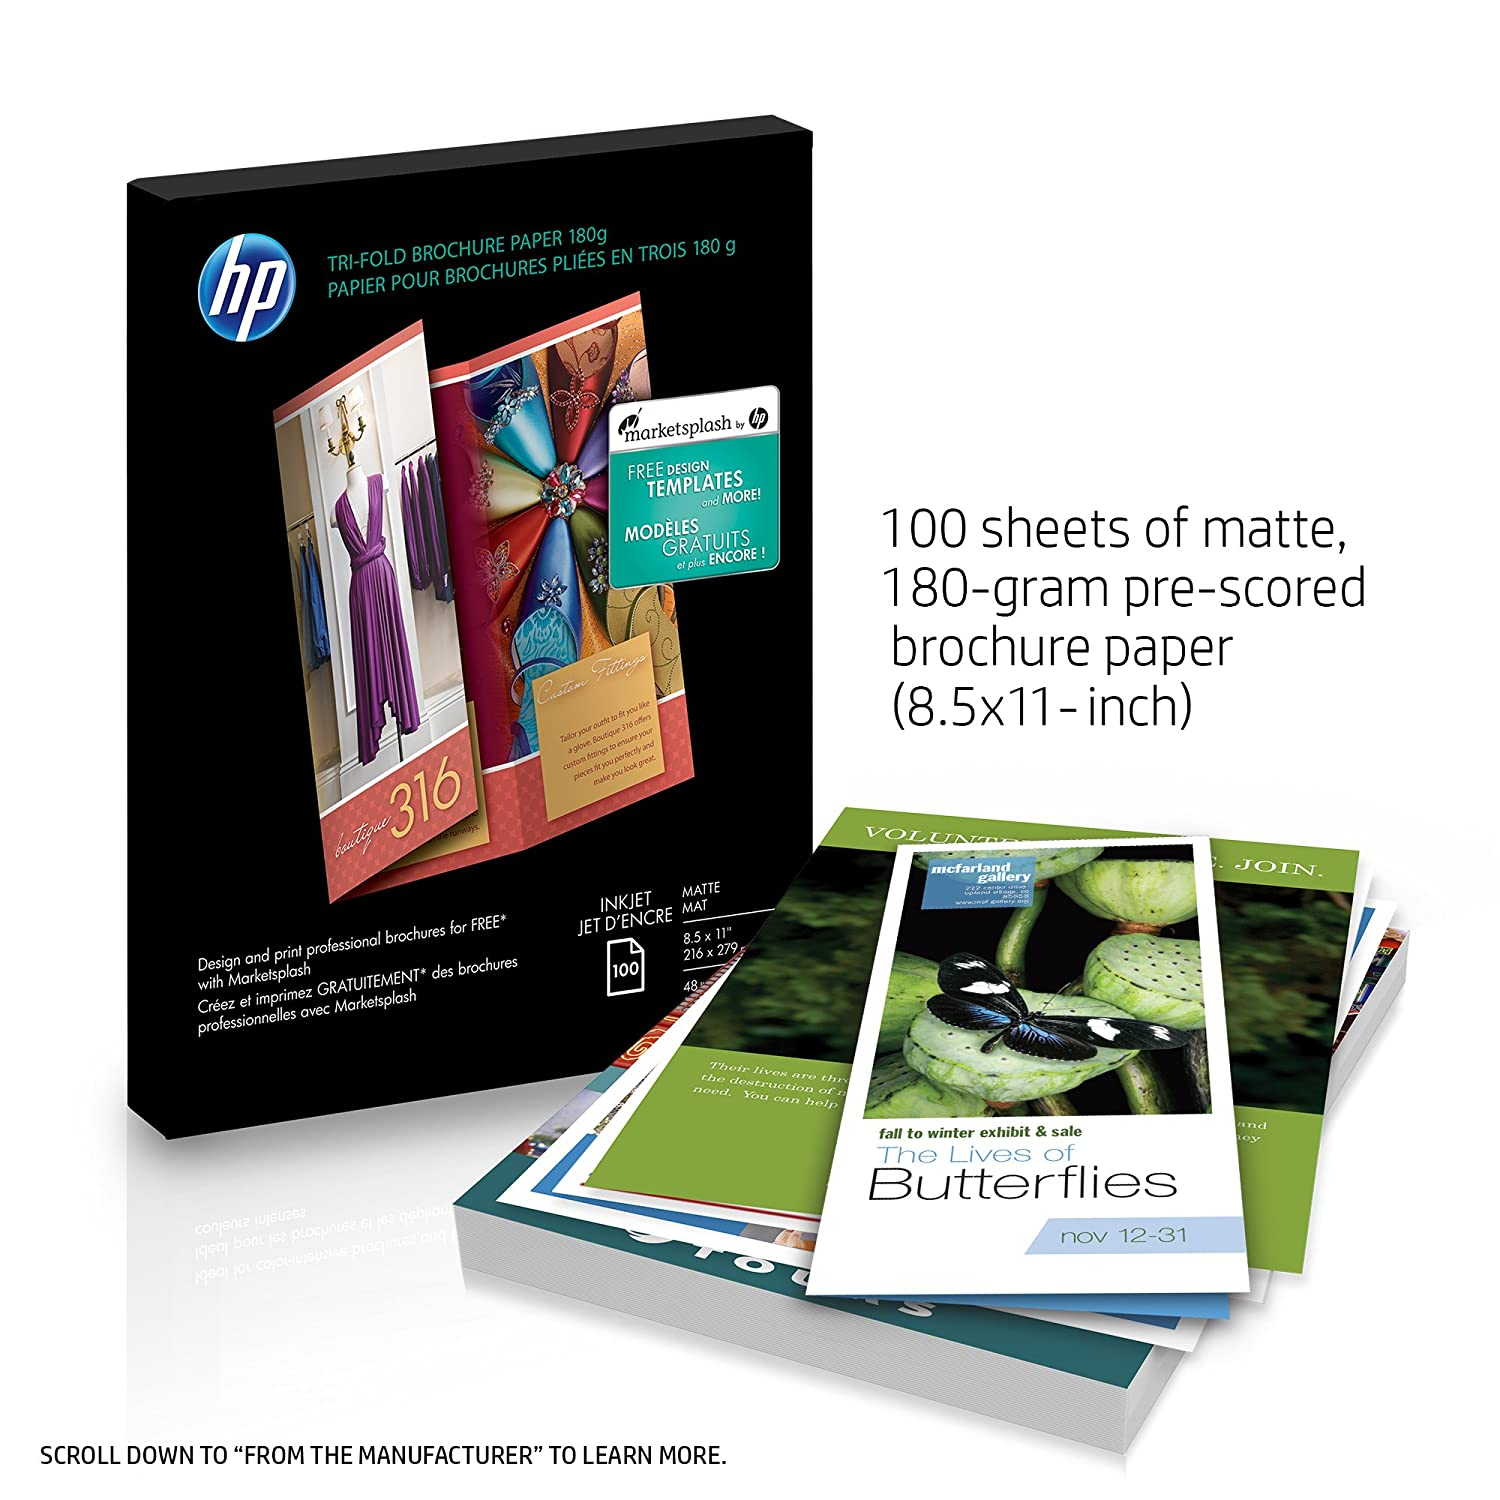 amazon com hp tri fold brochure paper matte 100 sheets 8 5 x 11